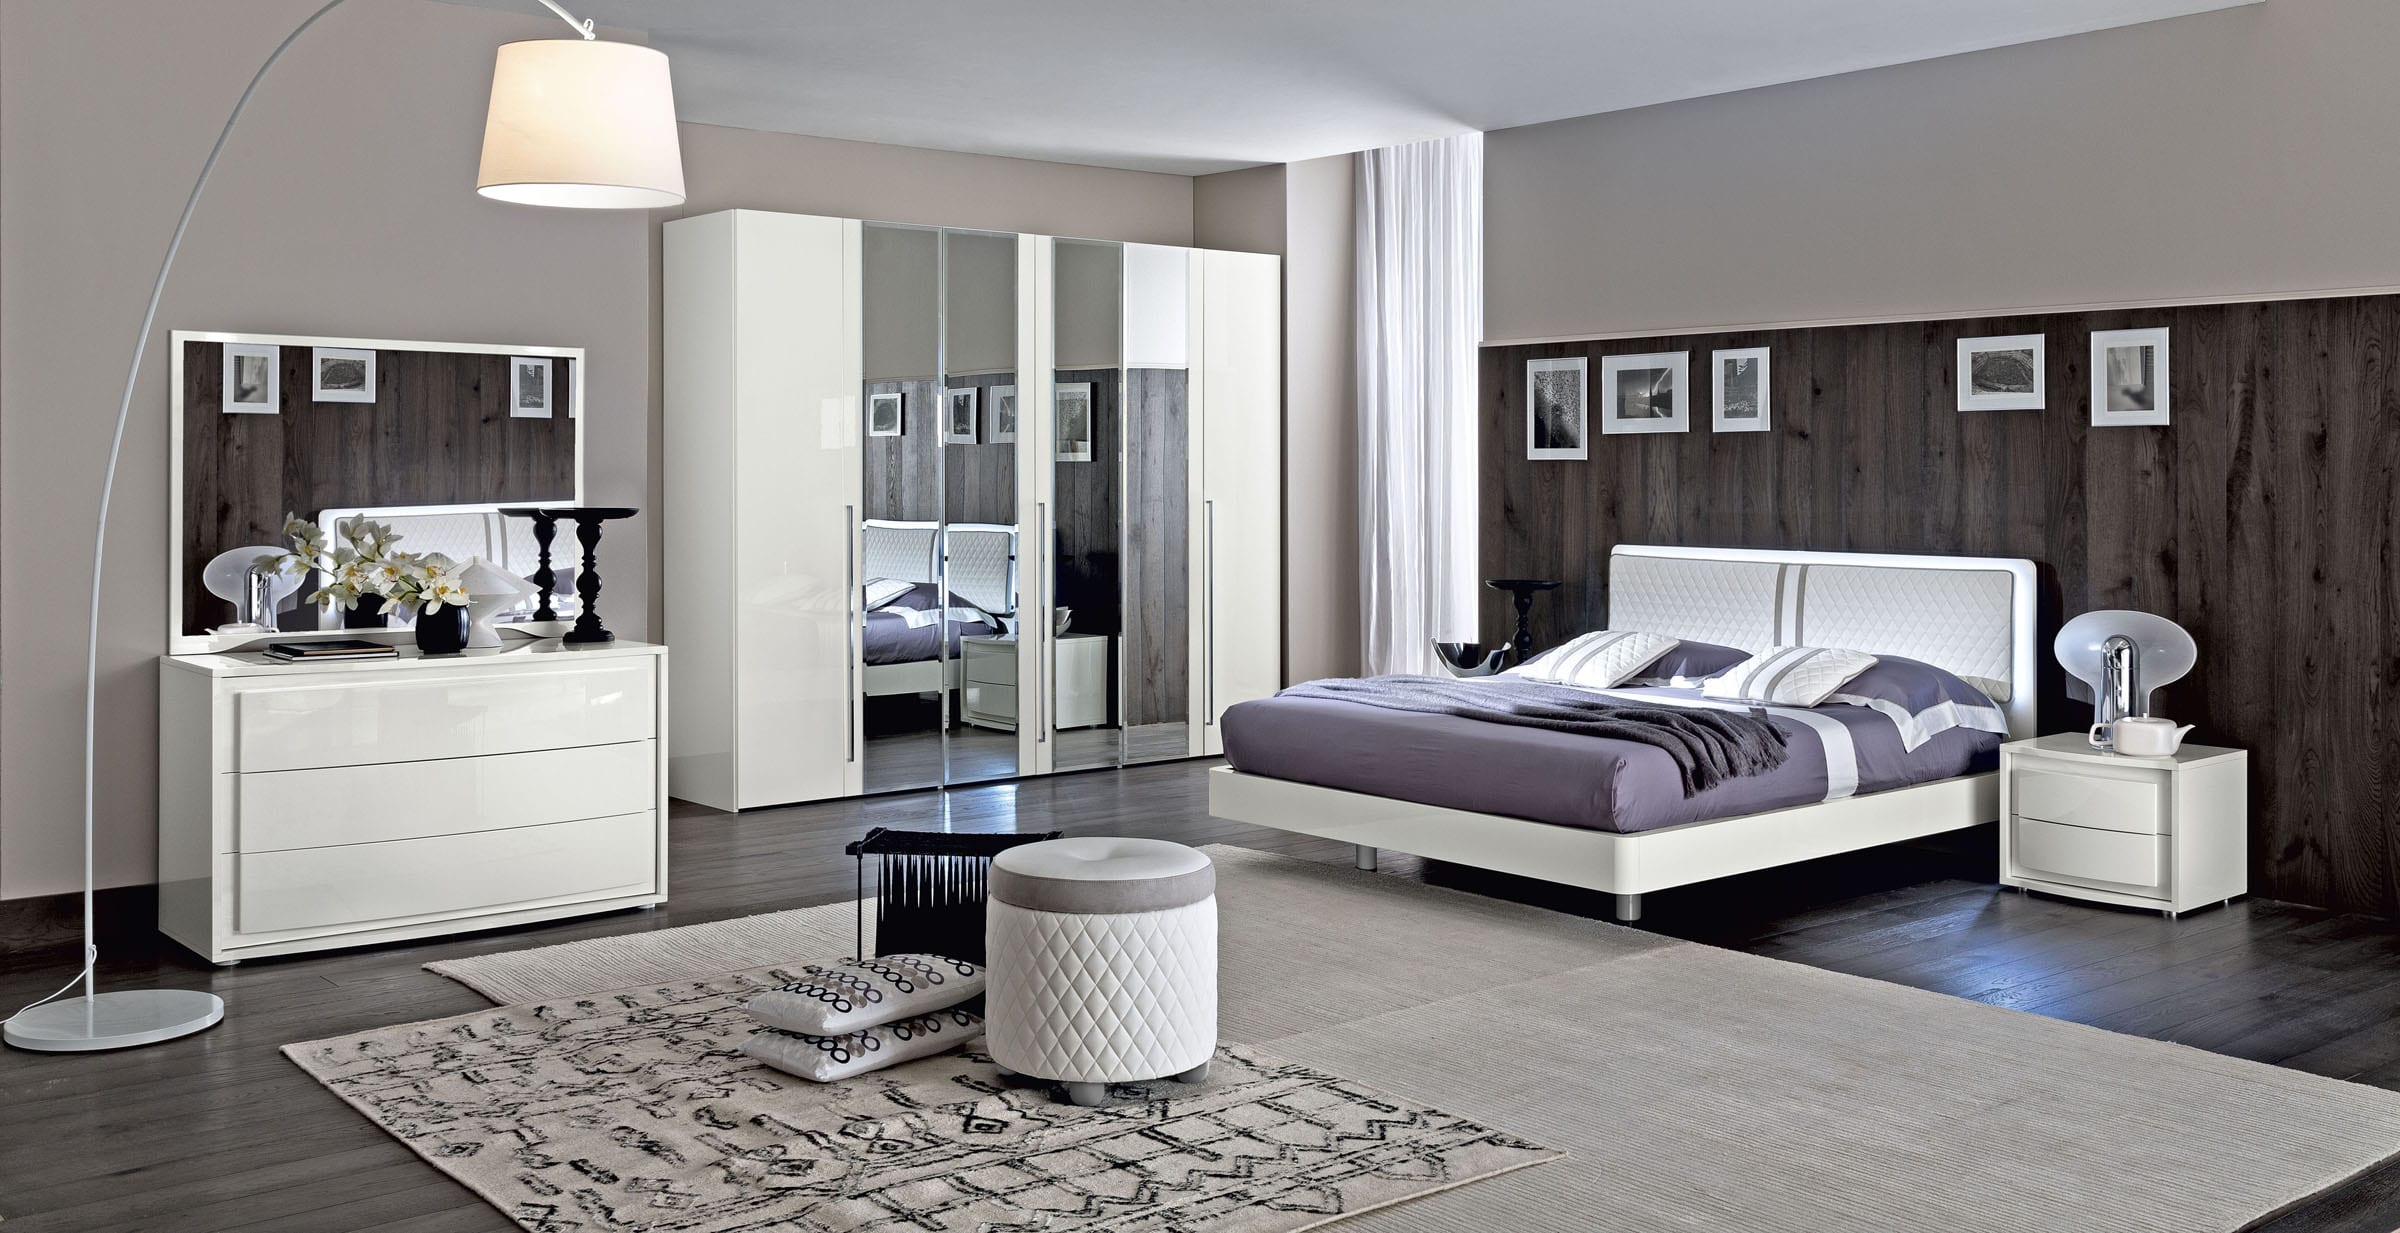 contemporary black bedroom furniture luxus schlafzimmer set spektakul 228 re m 246 belst 252 cke 14959